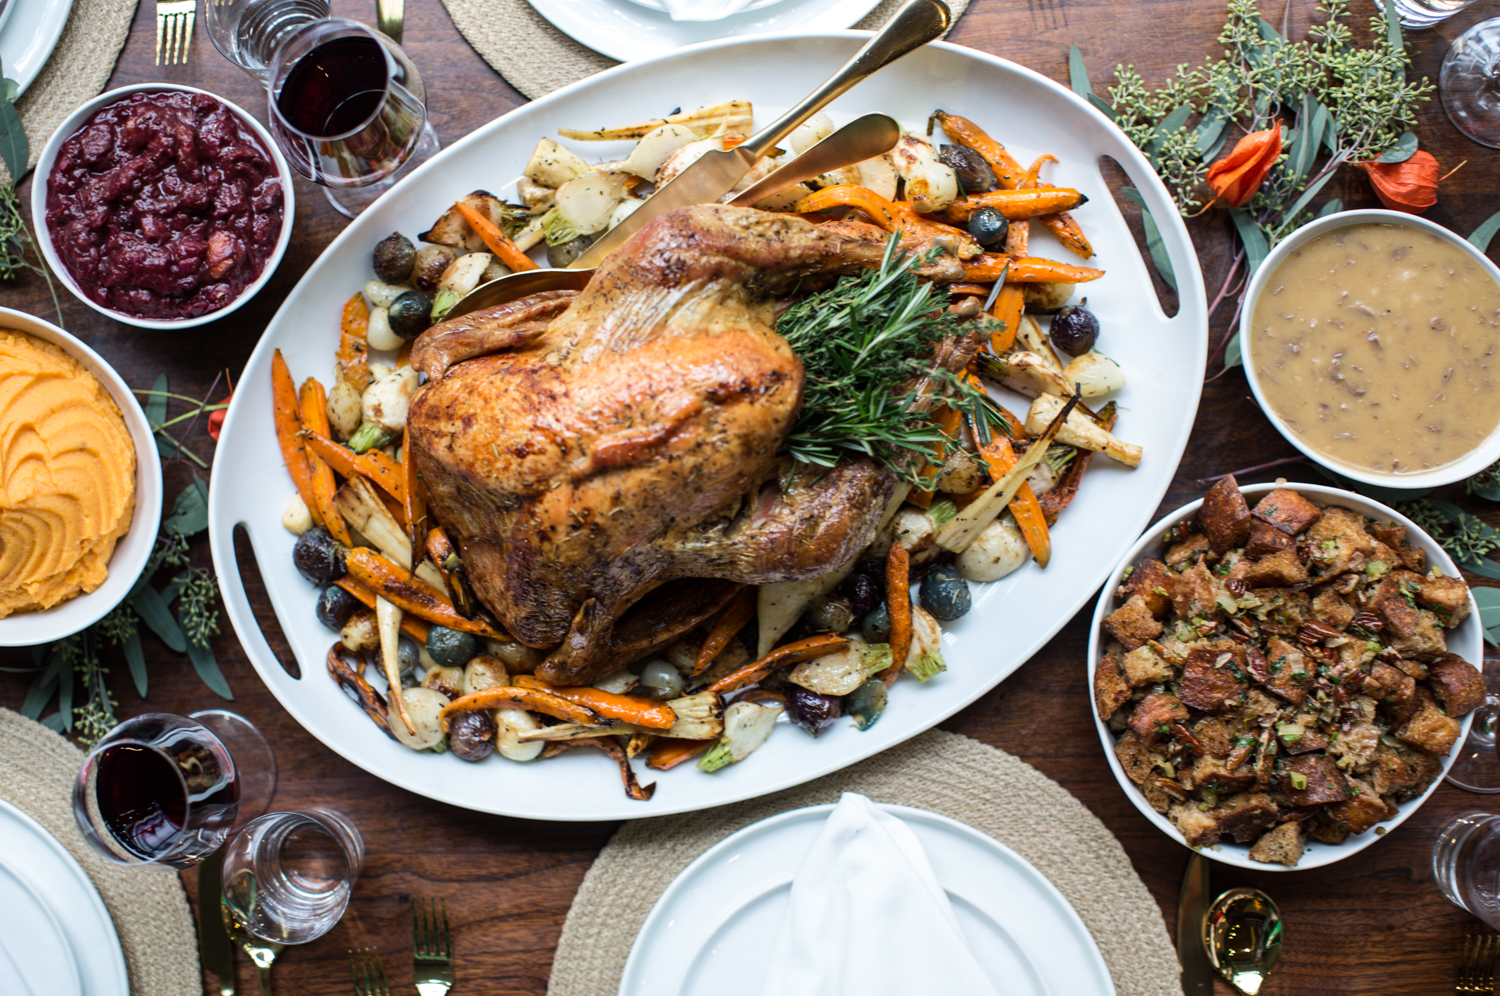 PLANNING YOUR THANKSGIVING FEAST